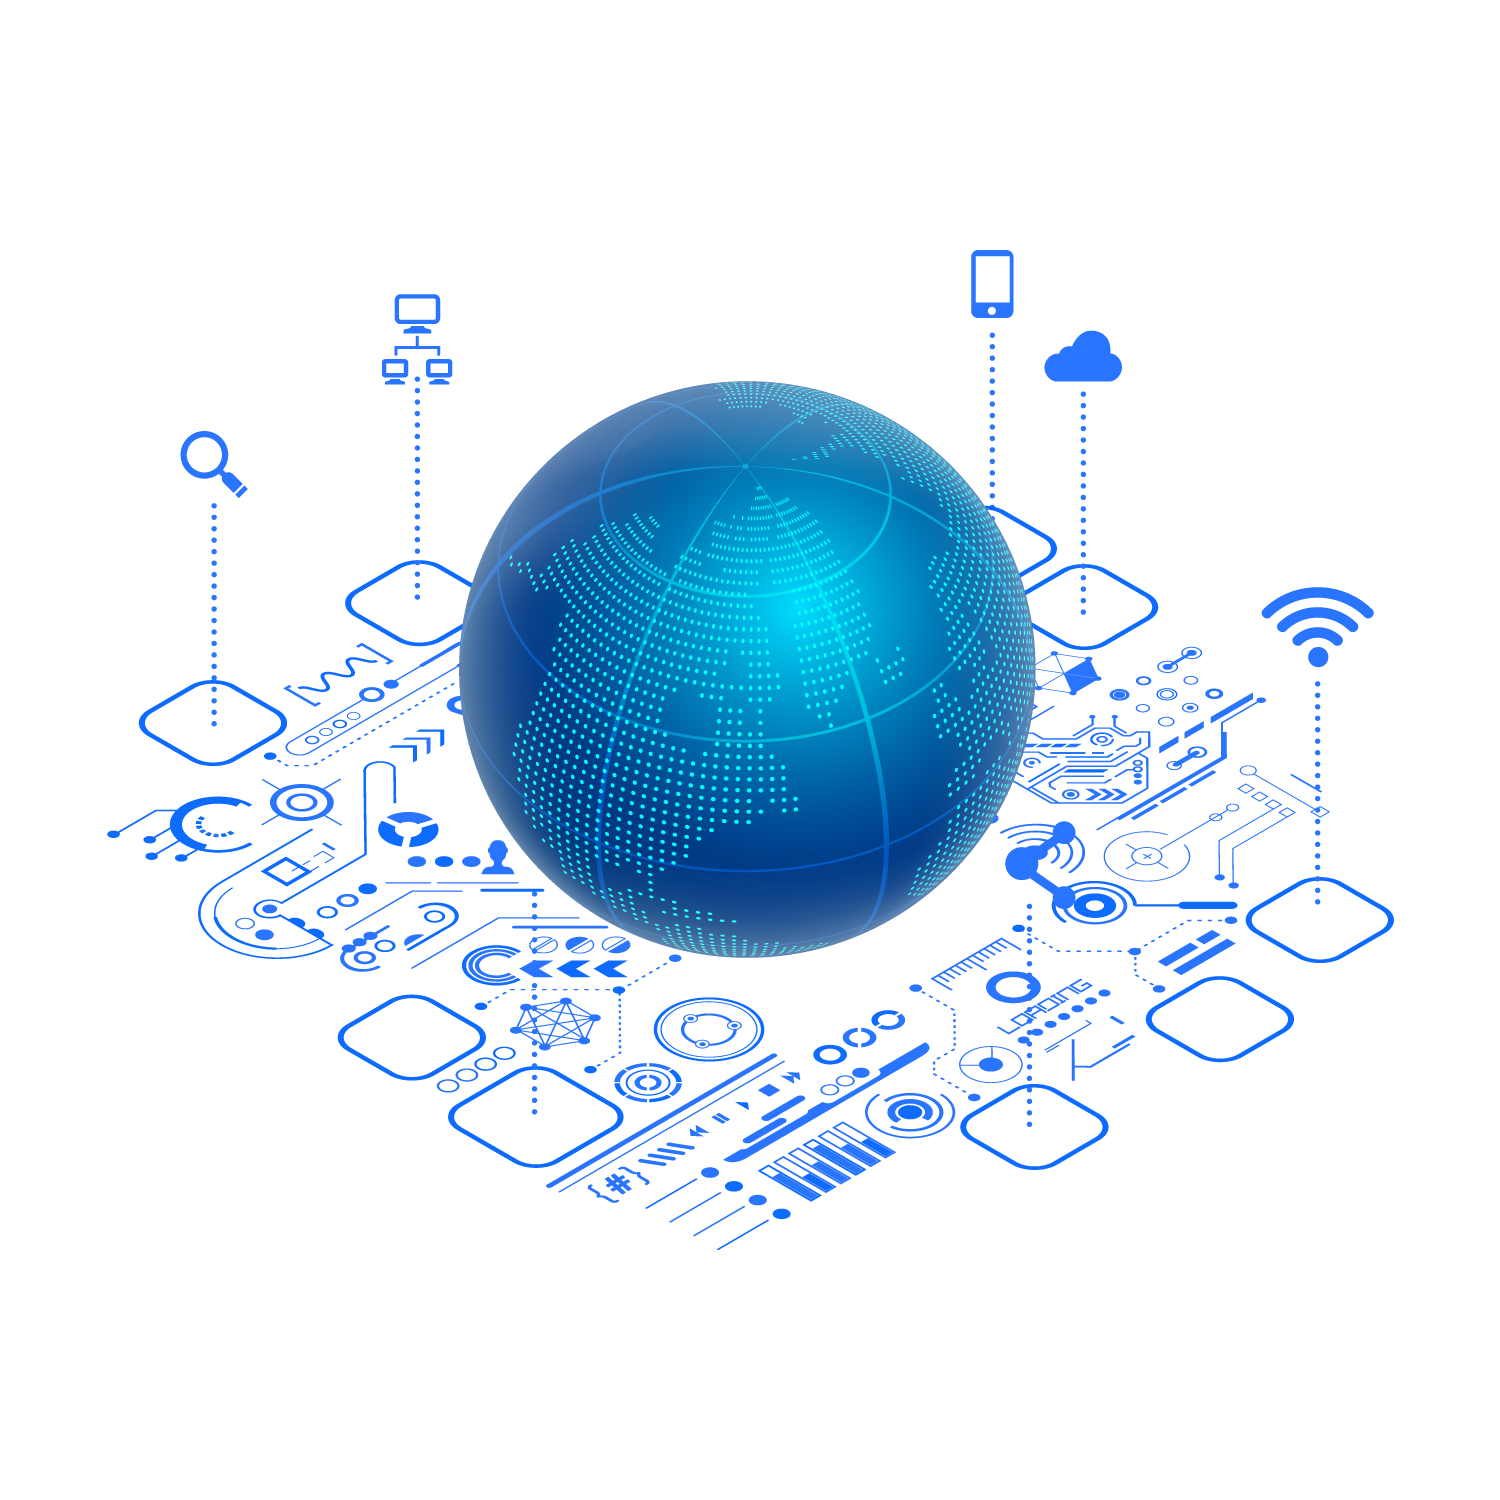 all communications internet of things